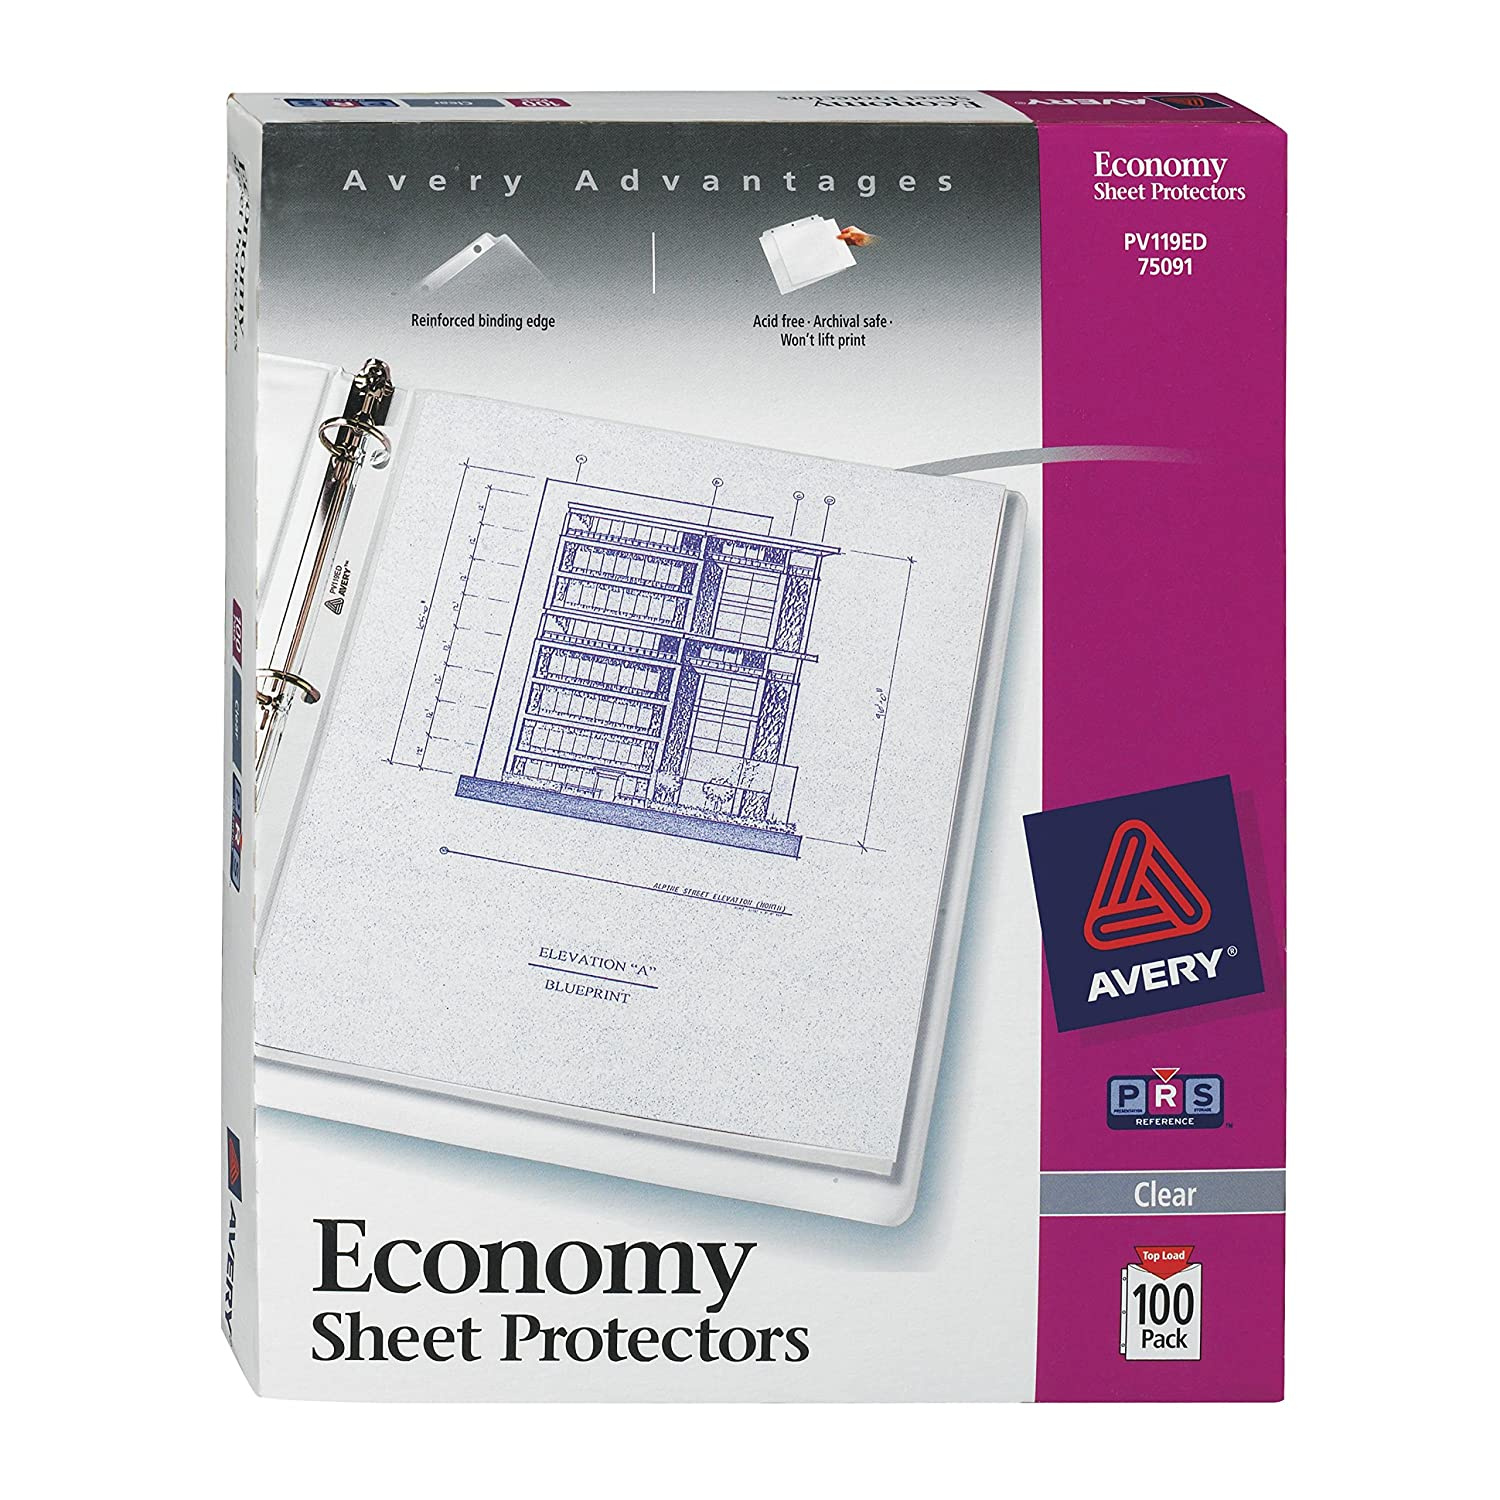 Amazon avery economy clear sheet protectors acid free amazon avery economy clear sheet protectors acid free 75091 office products malvernweather Image collections